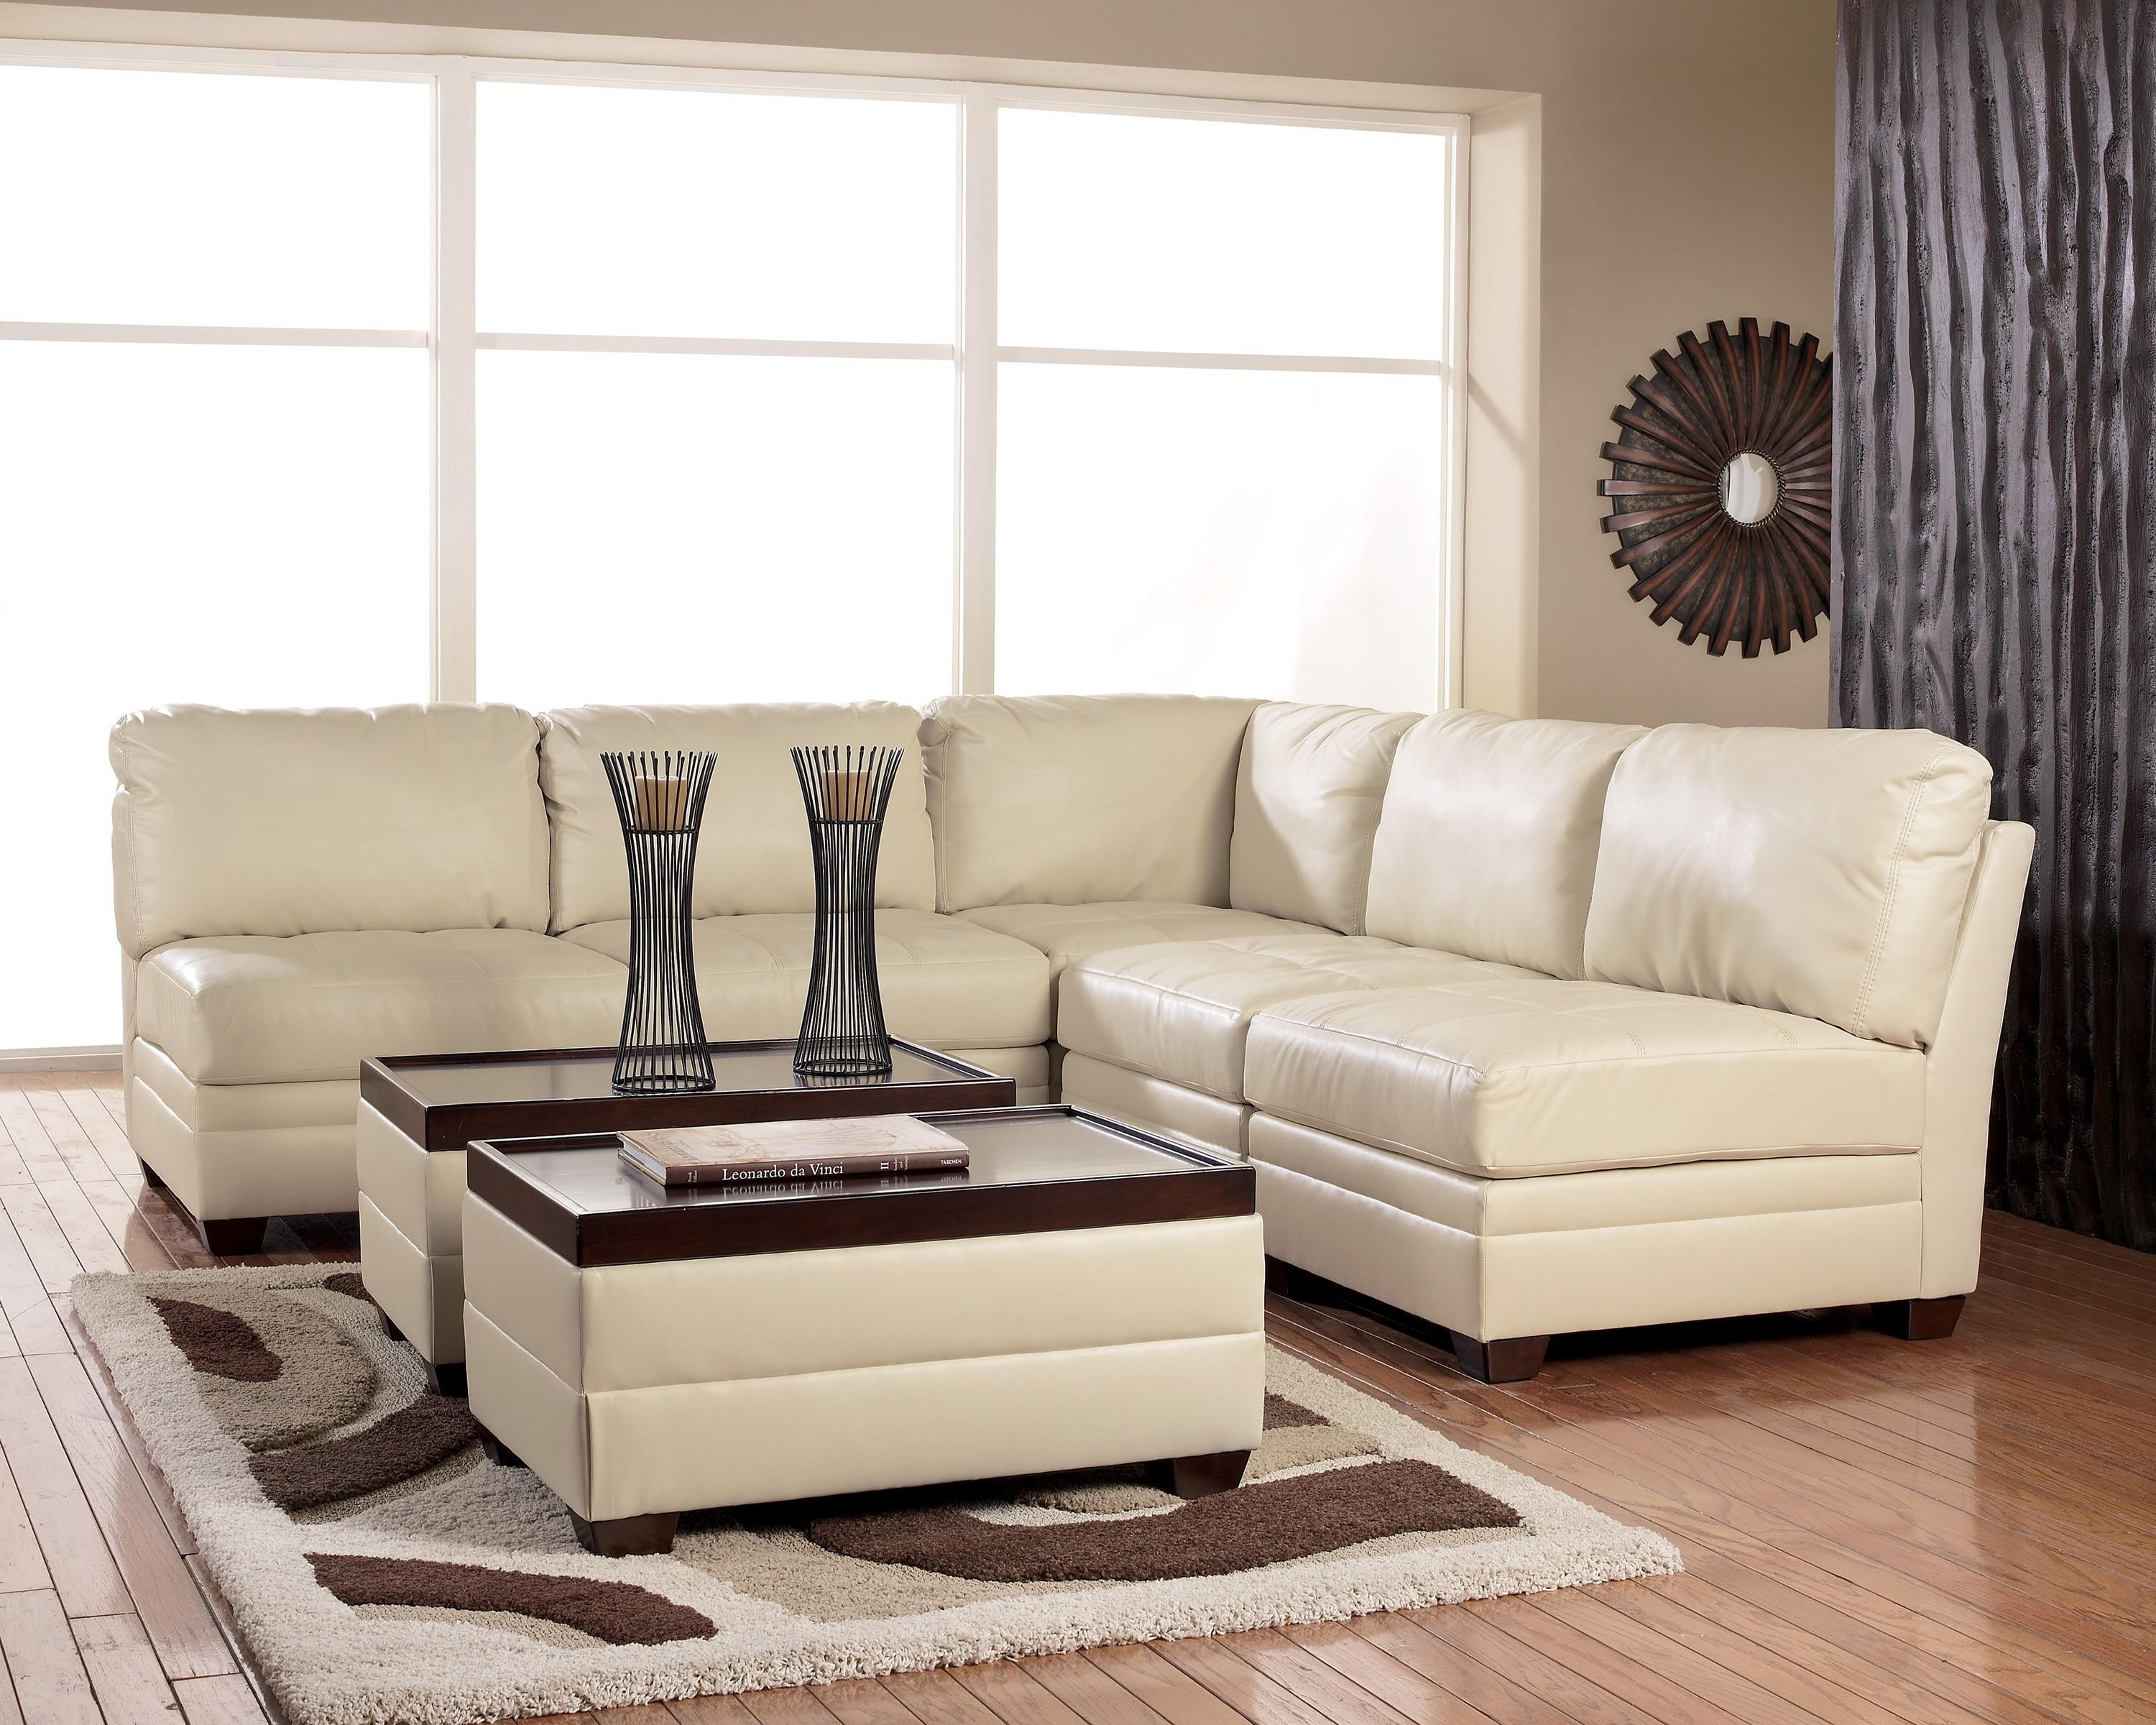 Ashley Furniture Faux Leather Furniture Designs